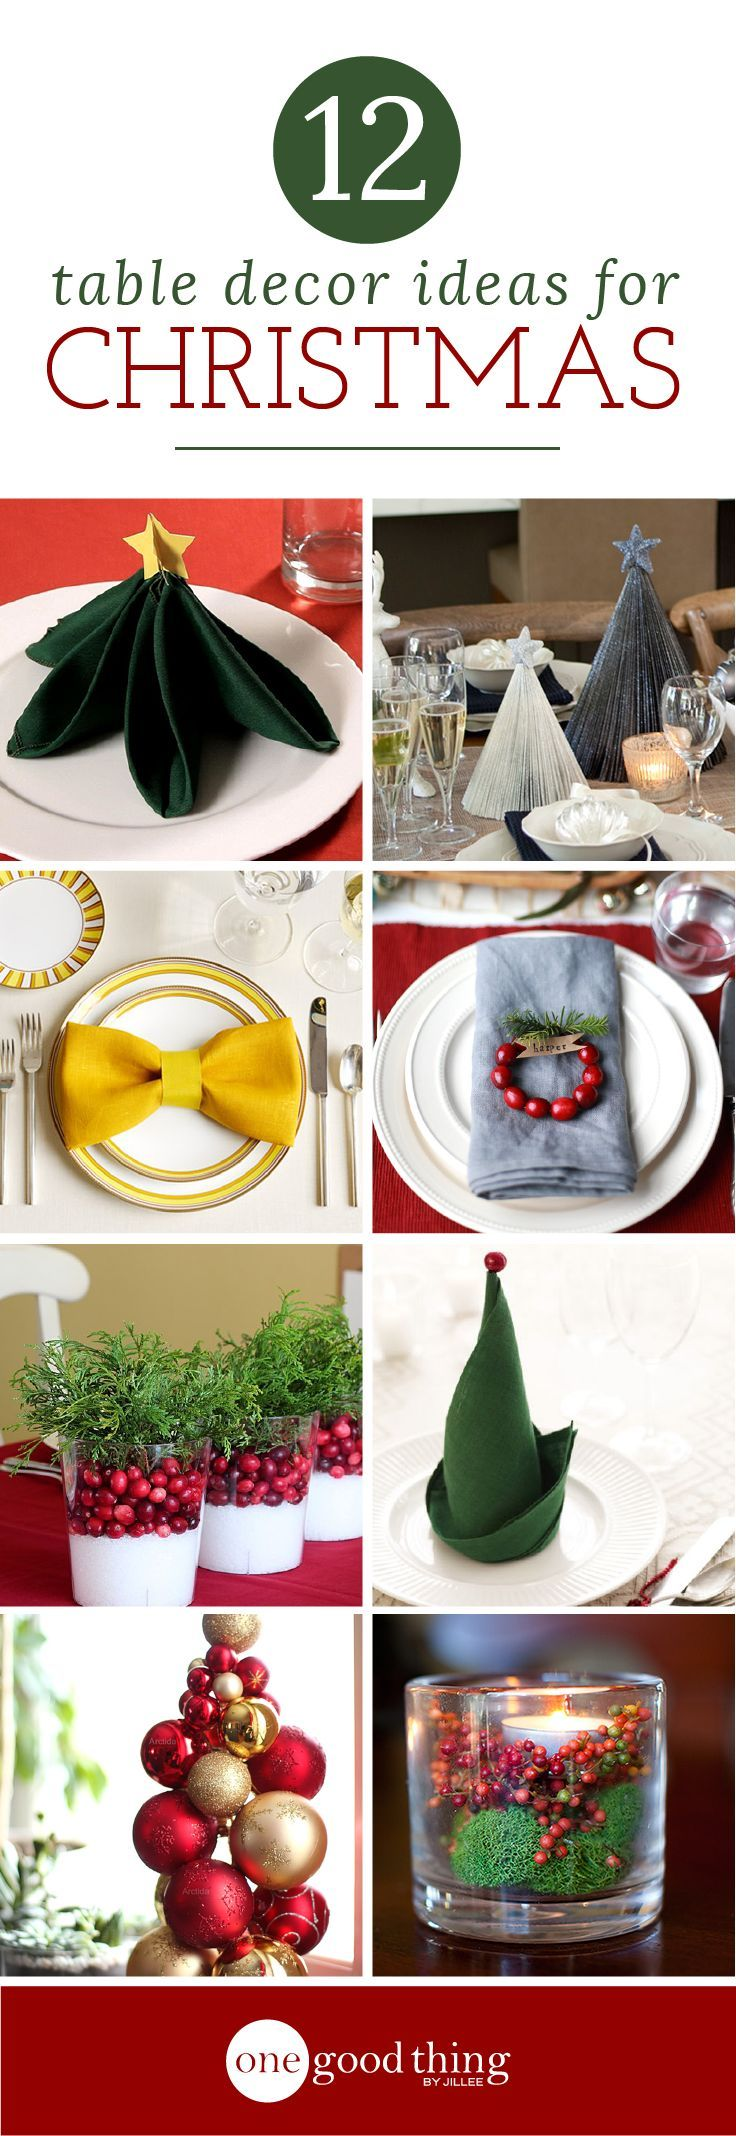 And Simple Christmas Center Decor Ideas Likewise 30 Eye Catching -